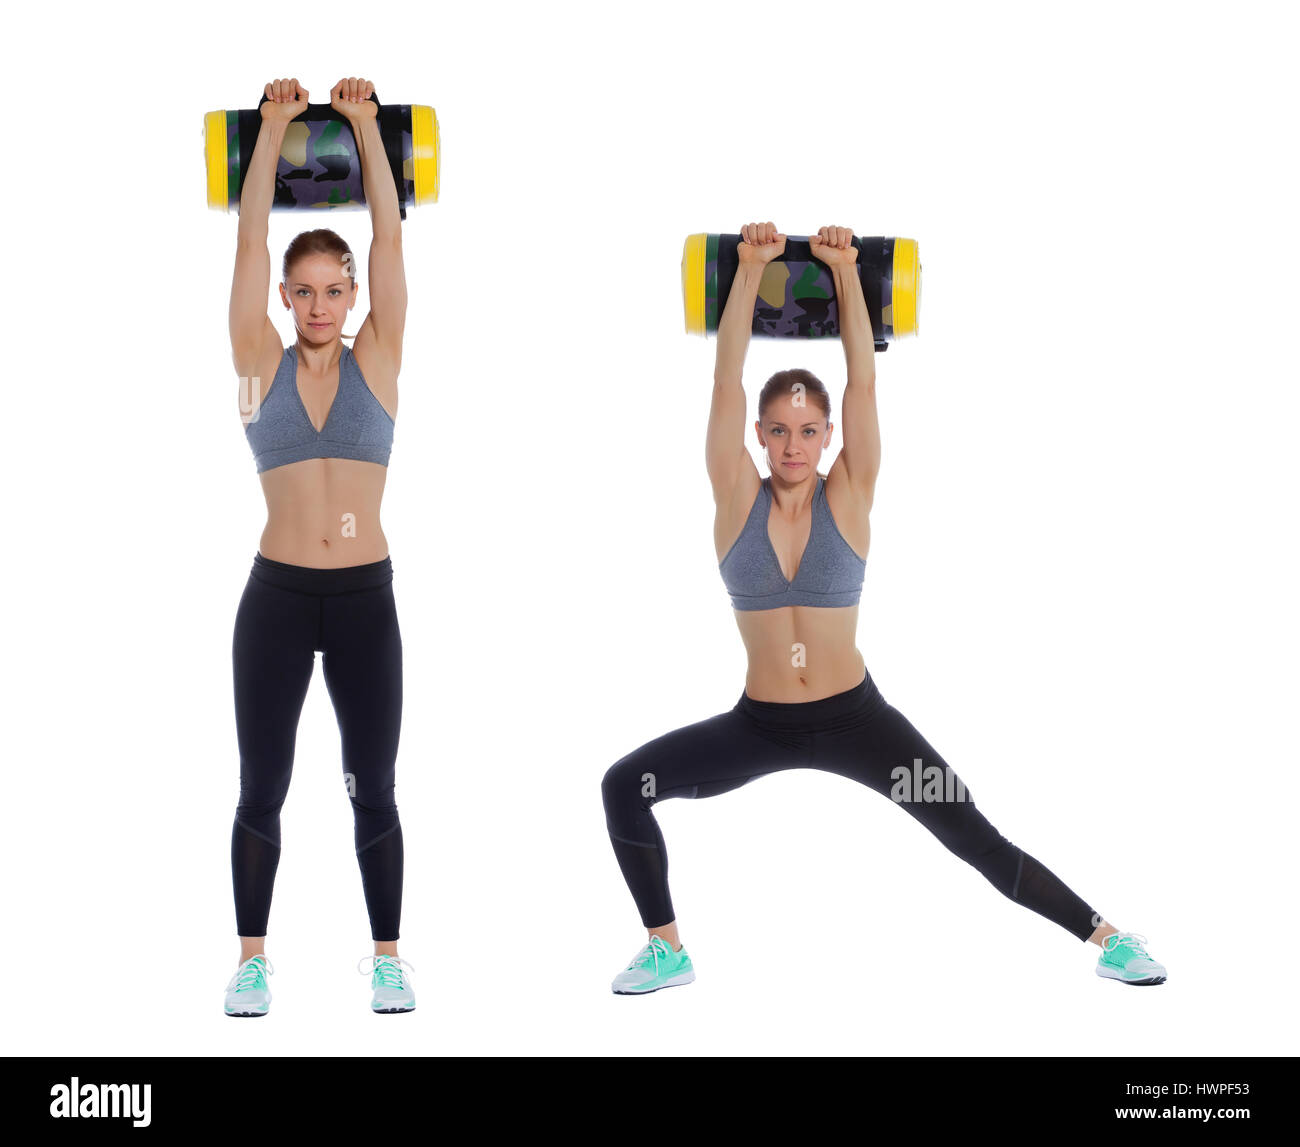 d149d9cc9df8 Core bag exercise executed with a professional trainer Stock Photo ...